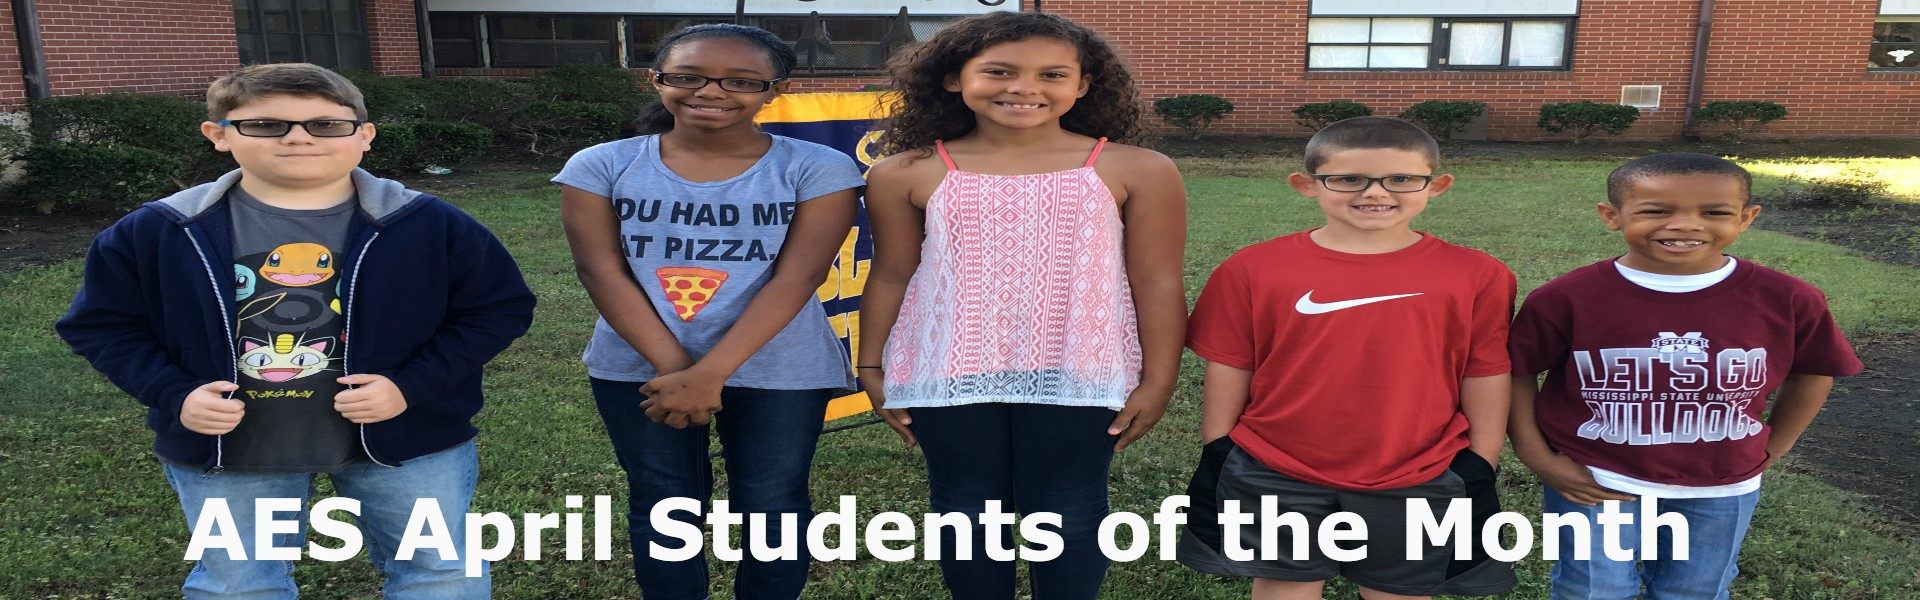 AES April Students of the Month